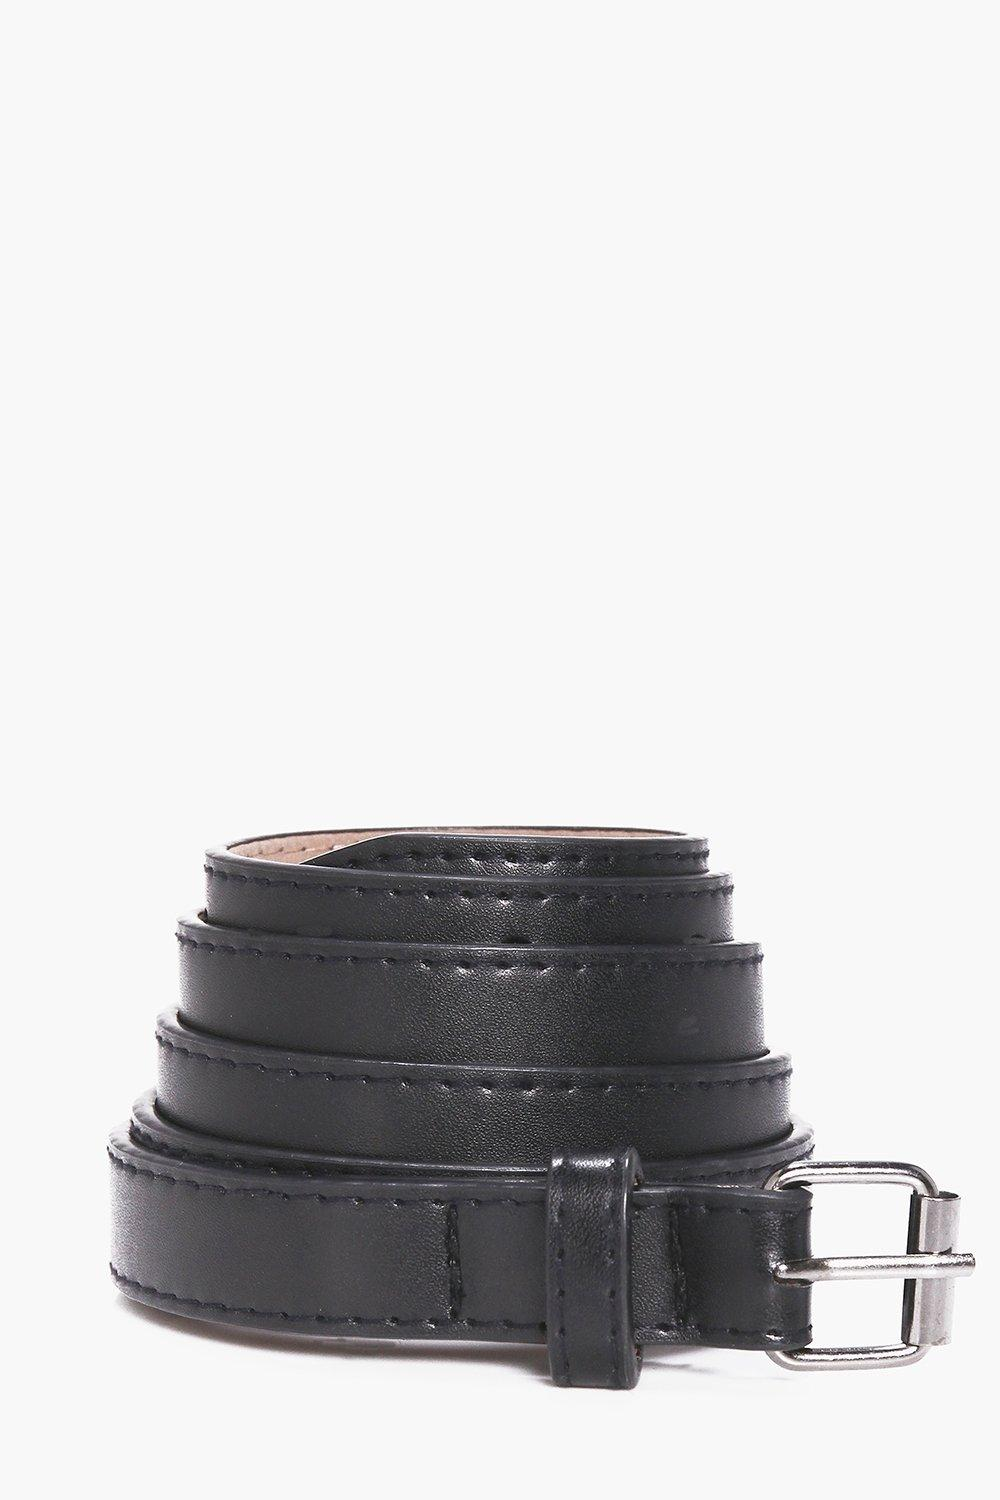 Leather Skinny Belt - black - Faux Leather Skinny